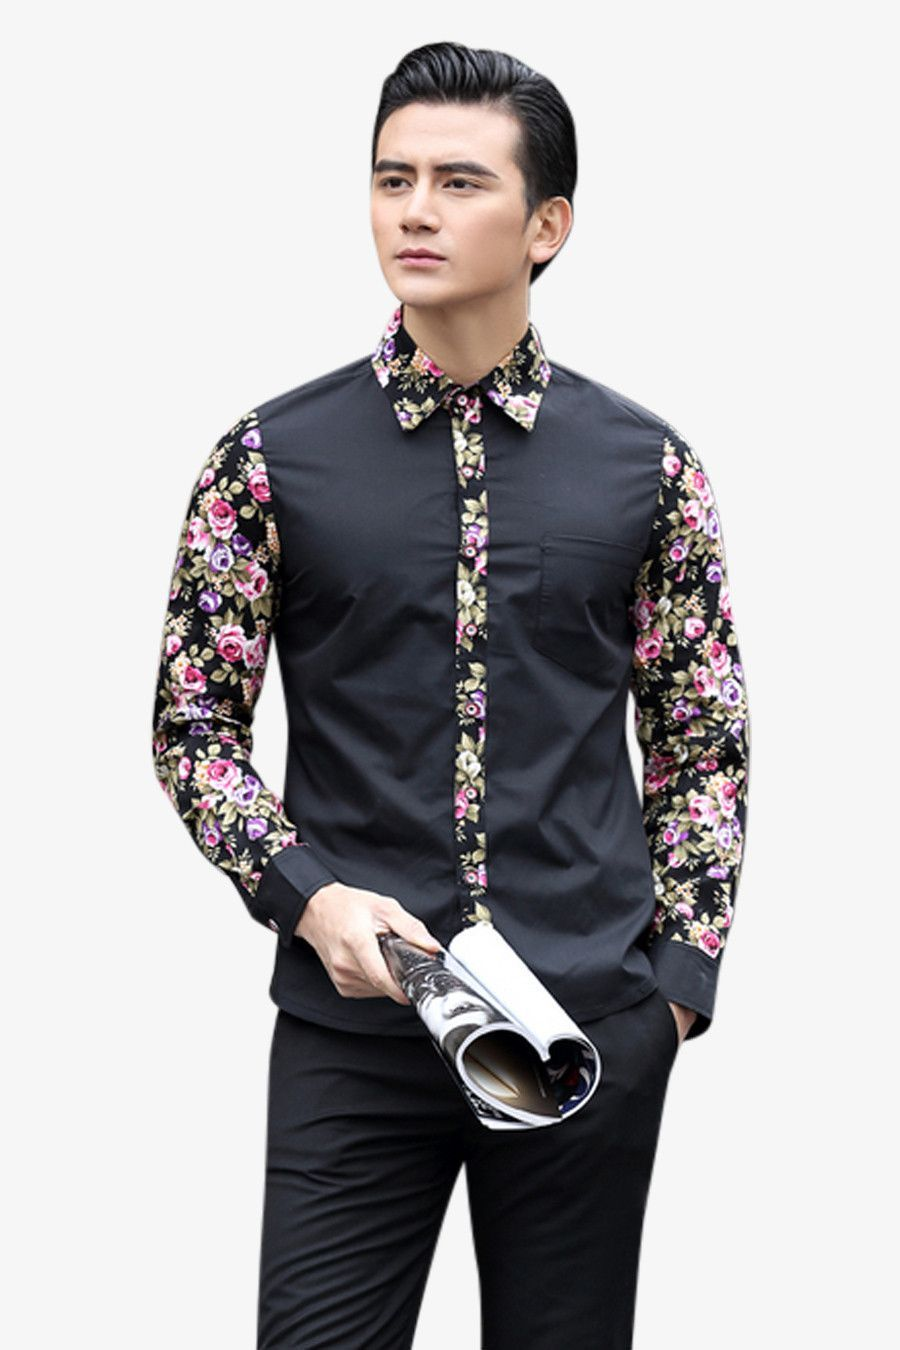 Men's Floral Long Sleeve Shirt In Black | Senior Prom Suit Ideas ...